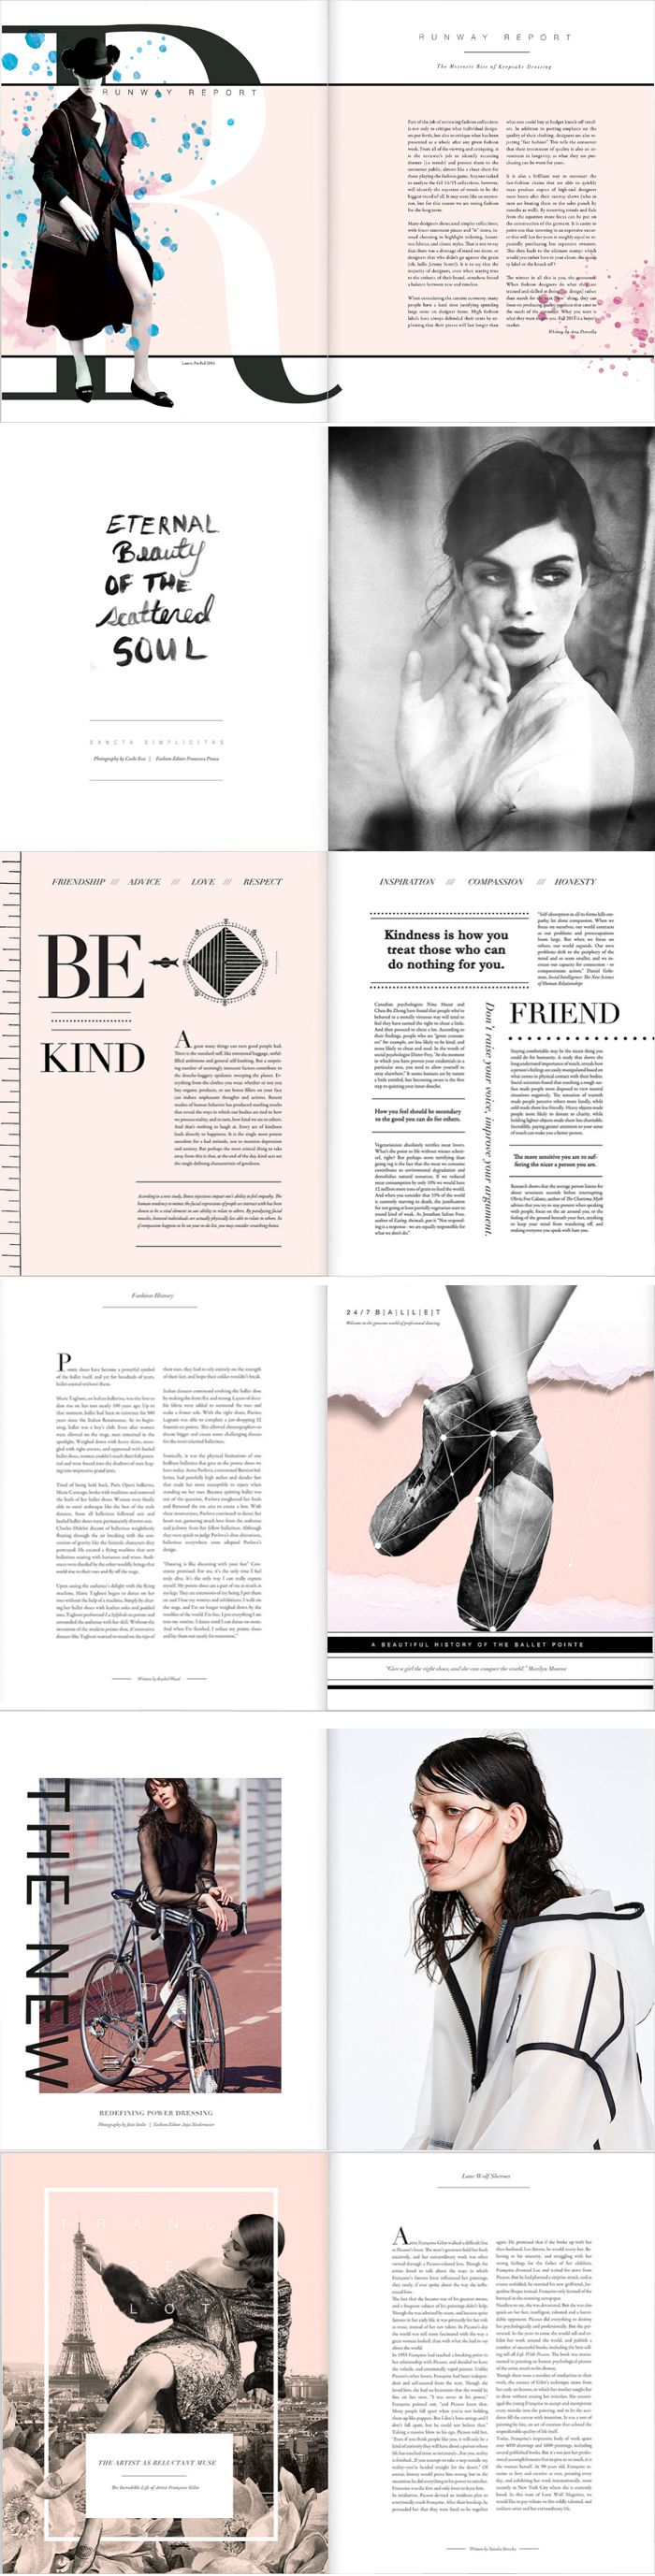 Lone Wolf Magazine | Issue 10 Layout                                                                                                                                                                                 More